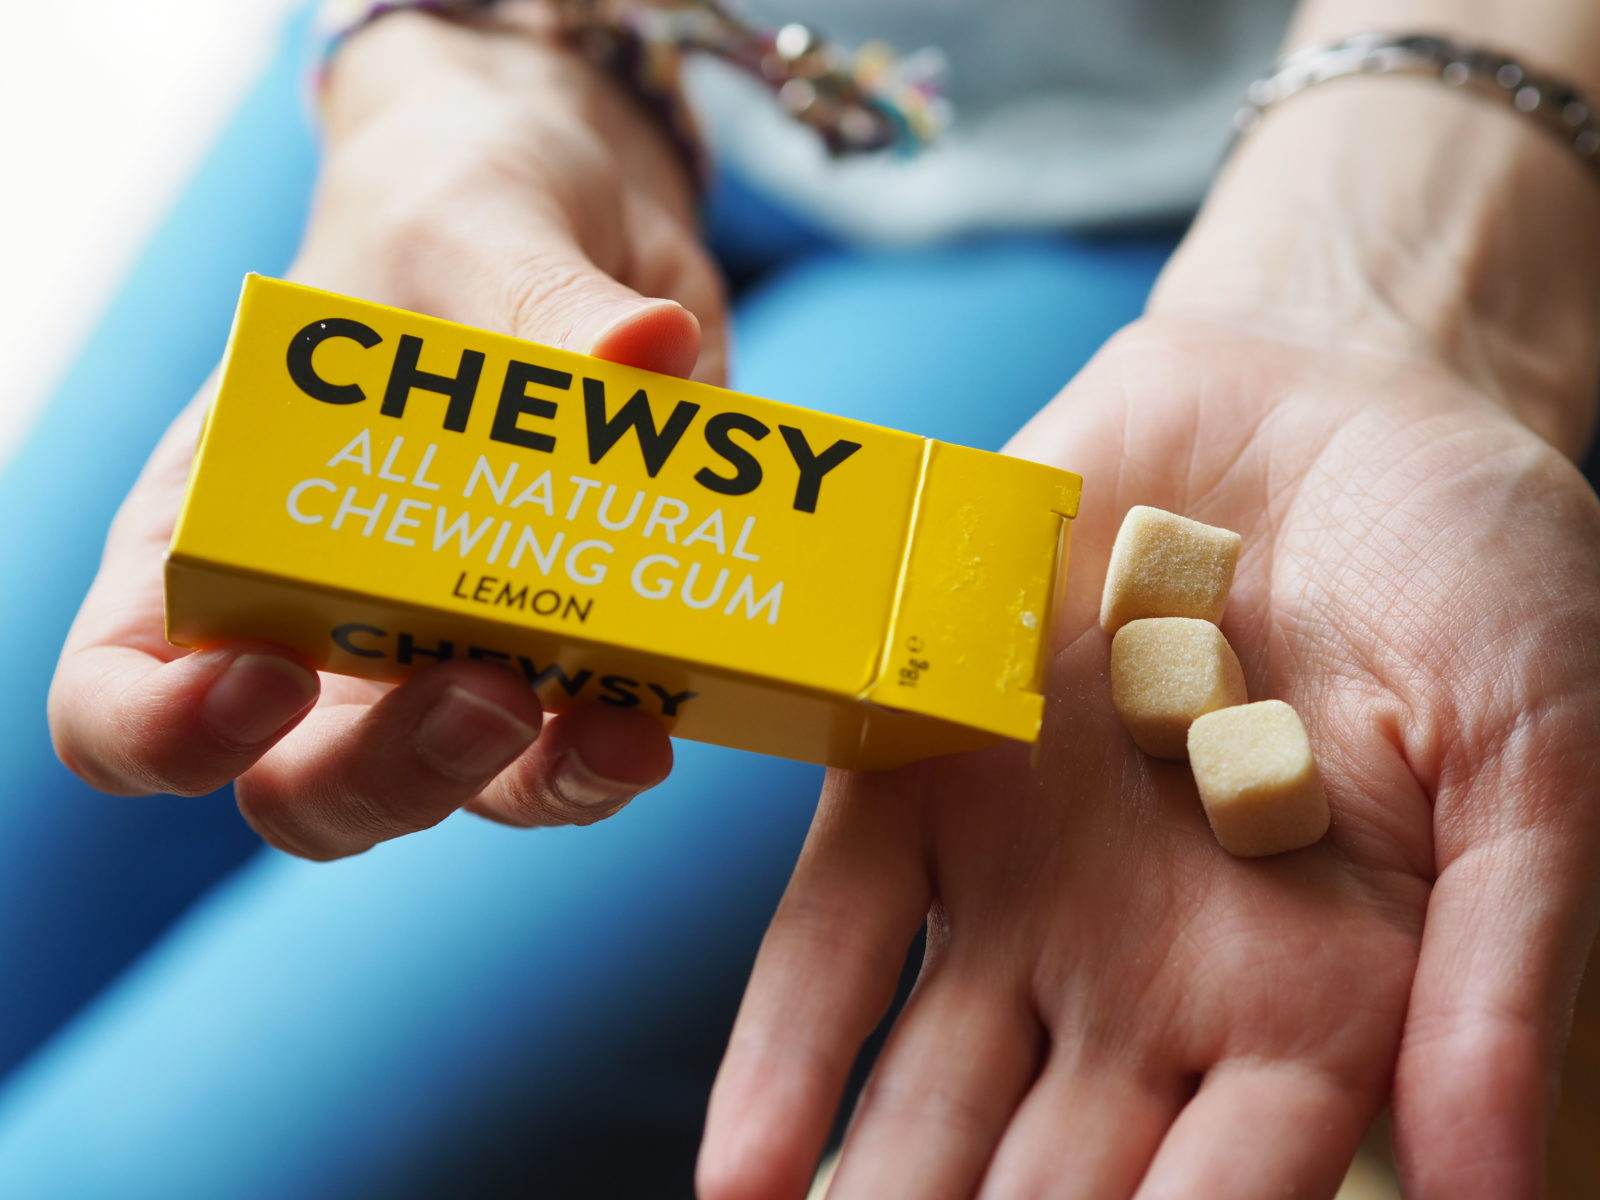 trying some chewsy gum